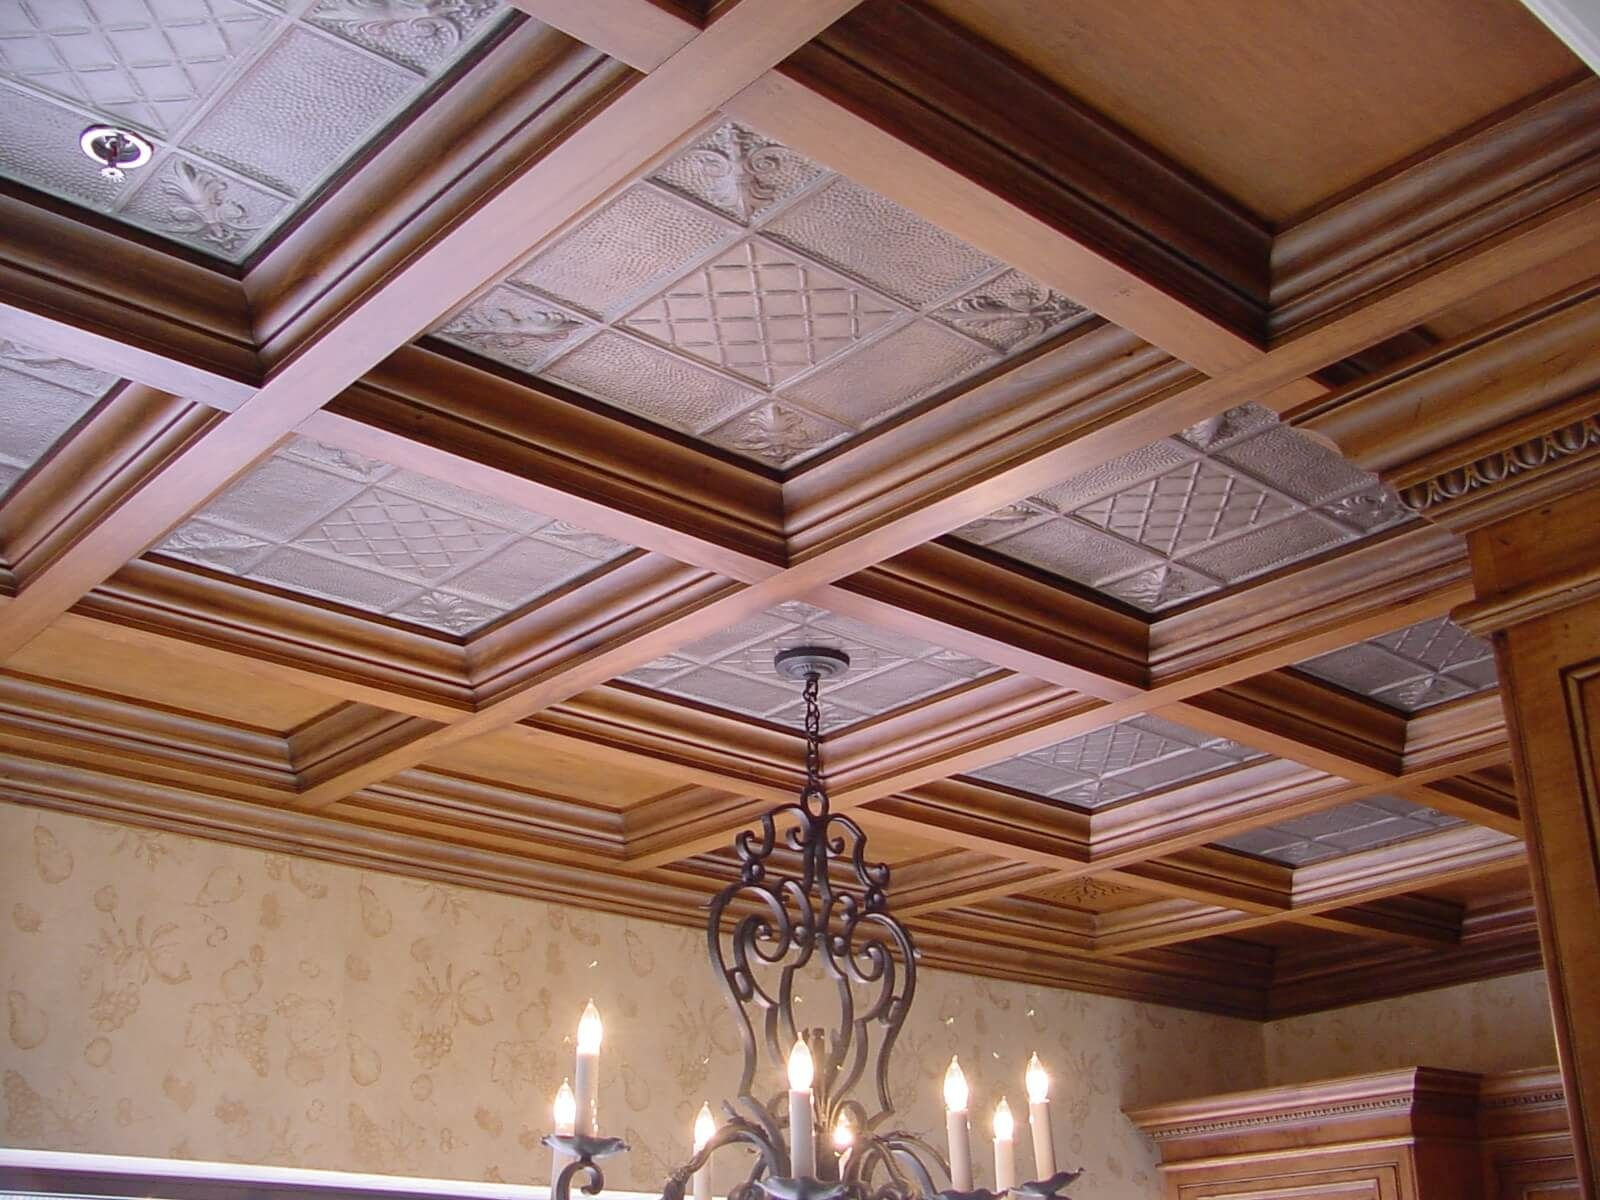 Plastic ceiling tile covers httpcreativechairsandtables plastic ceiling tile covers doublecrazyfo Image collections